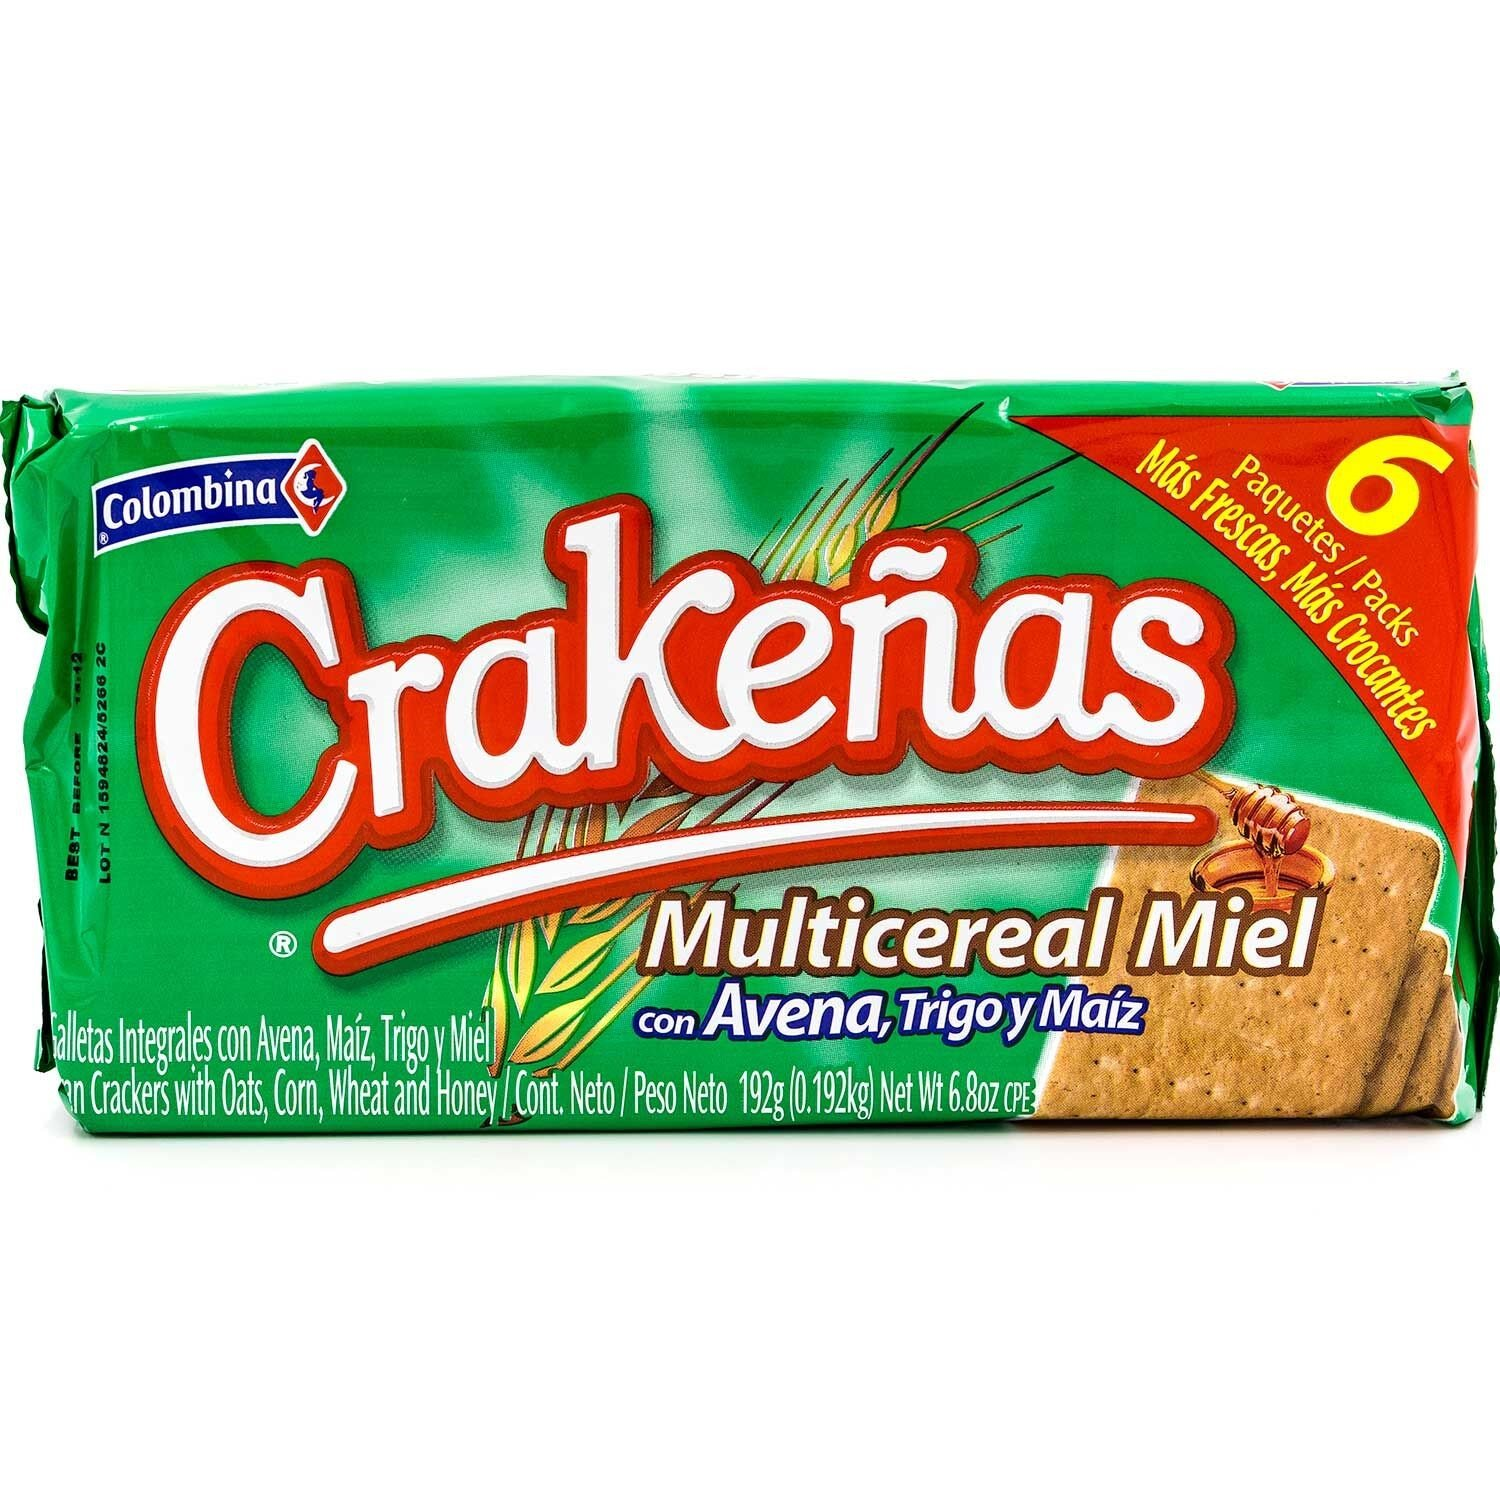 Colombina Crakenas Multi Cereal Miel, 6.8 Ounce (Pack of 12)